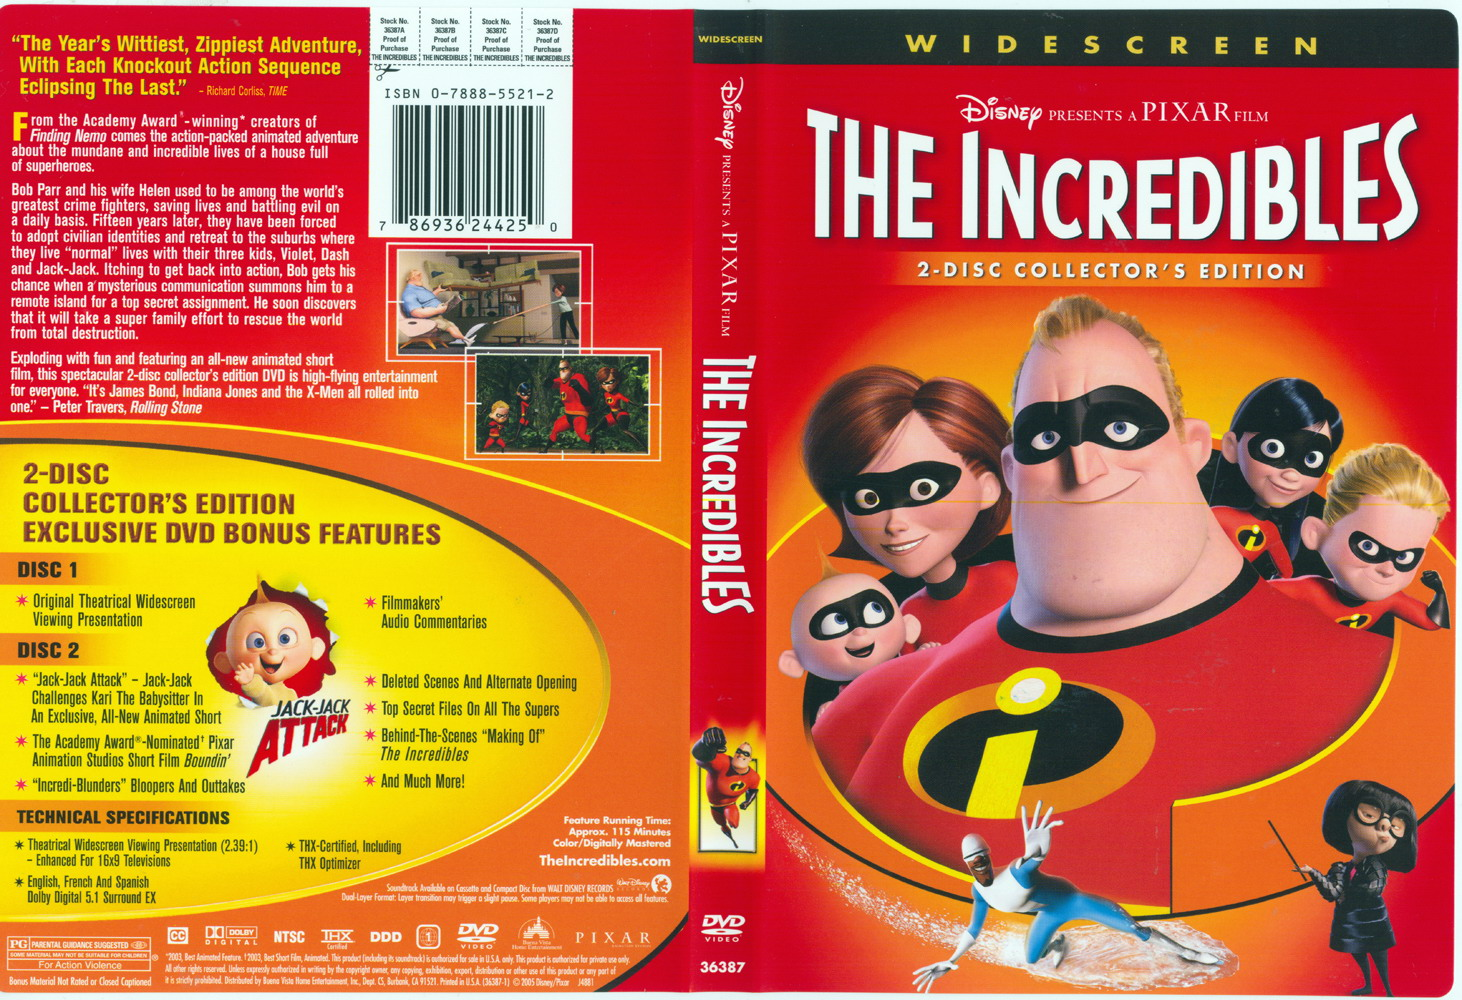 The incredibles front